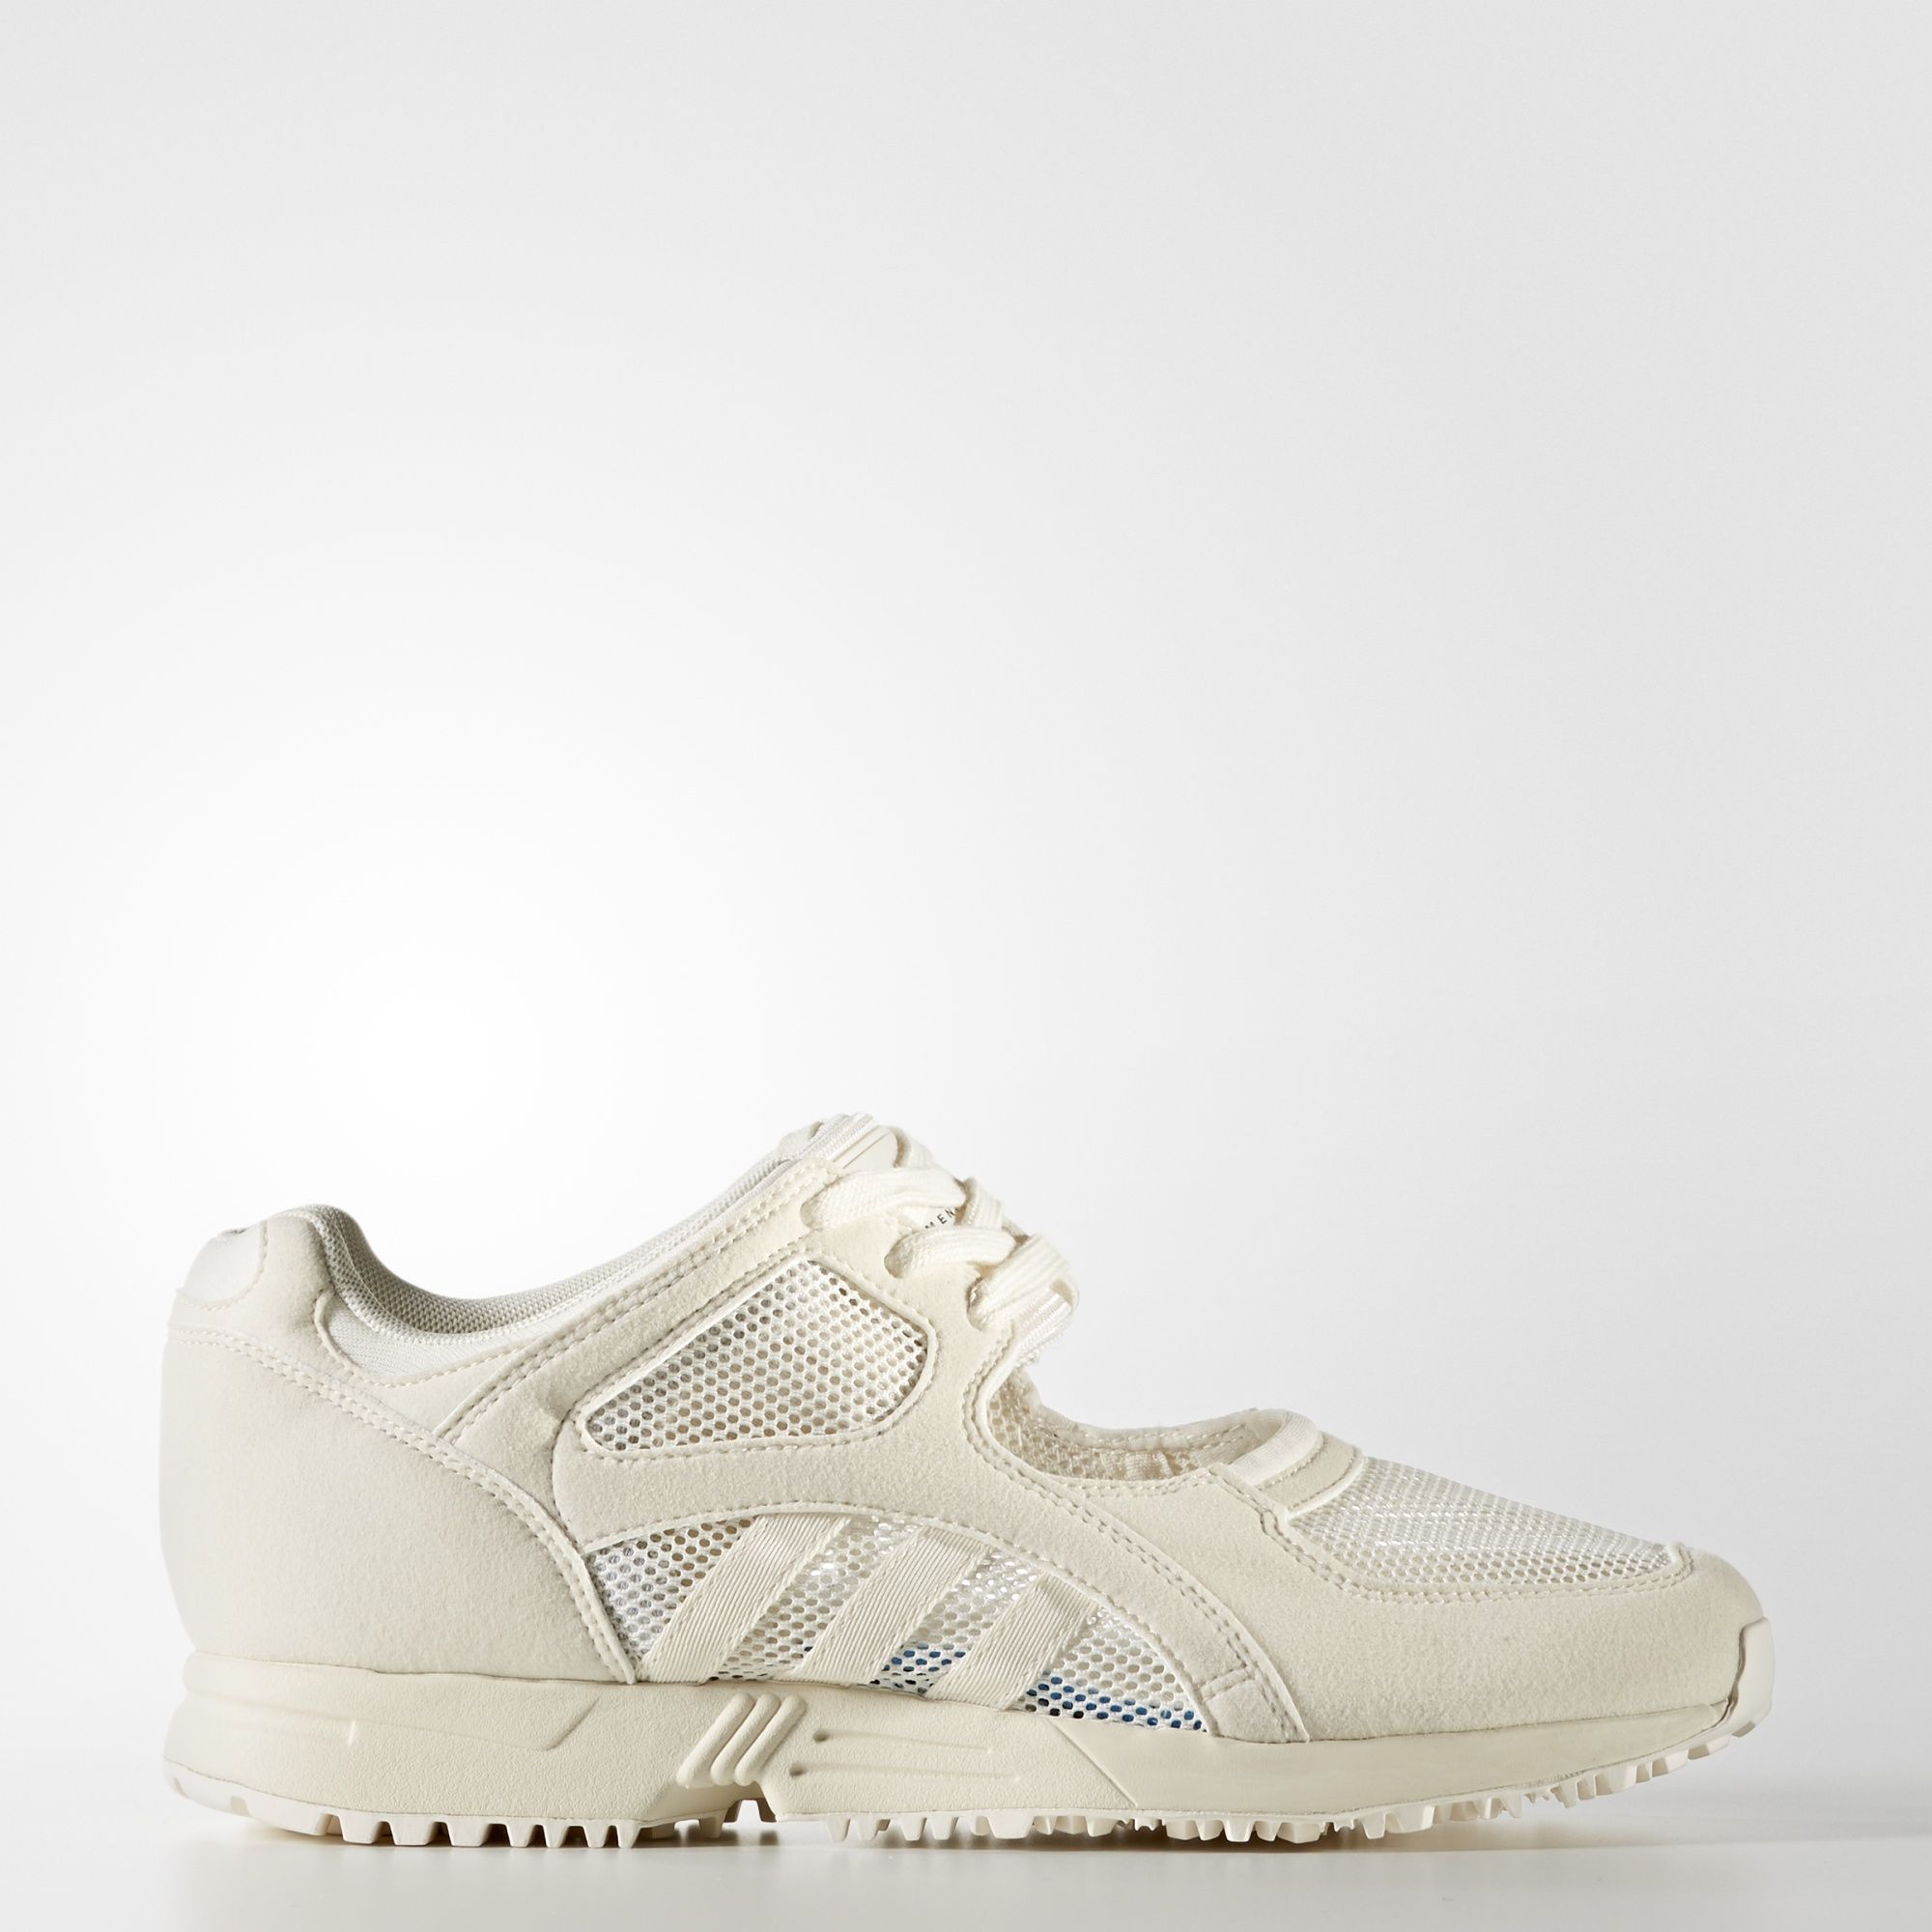 new product 7dd56 ce1a1 Adidas Originals EQT Racing 91 Womens Fitness Sports Trainer Shoes